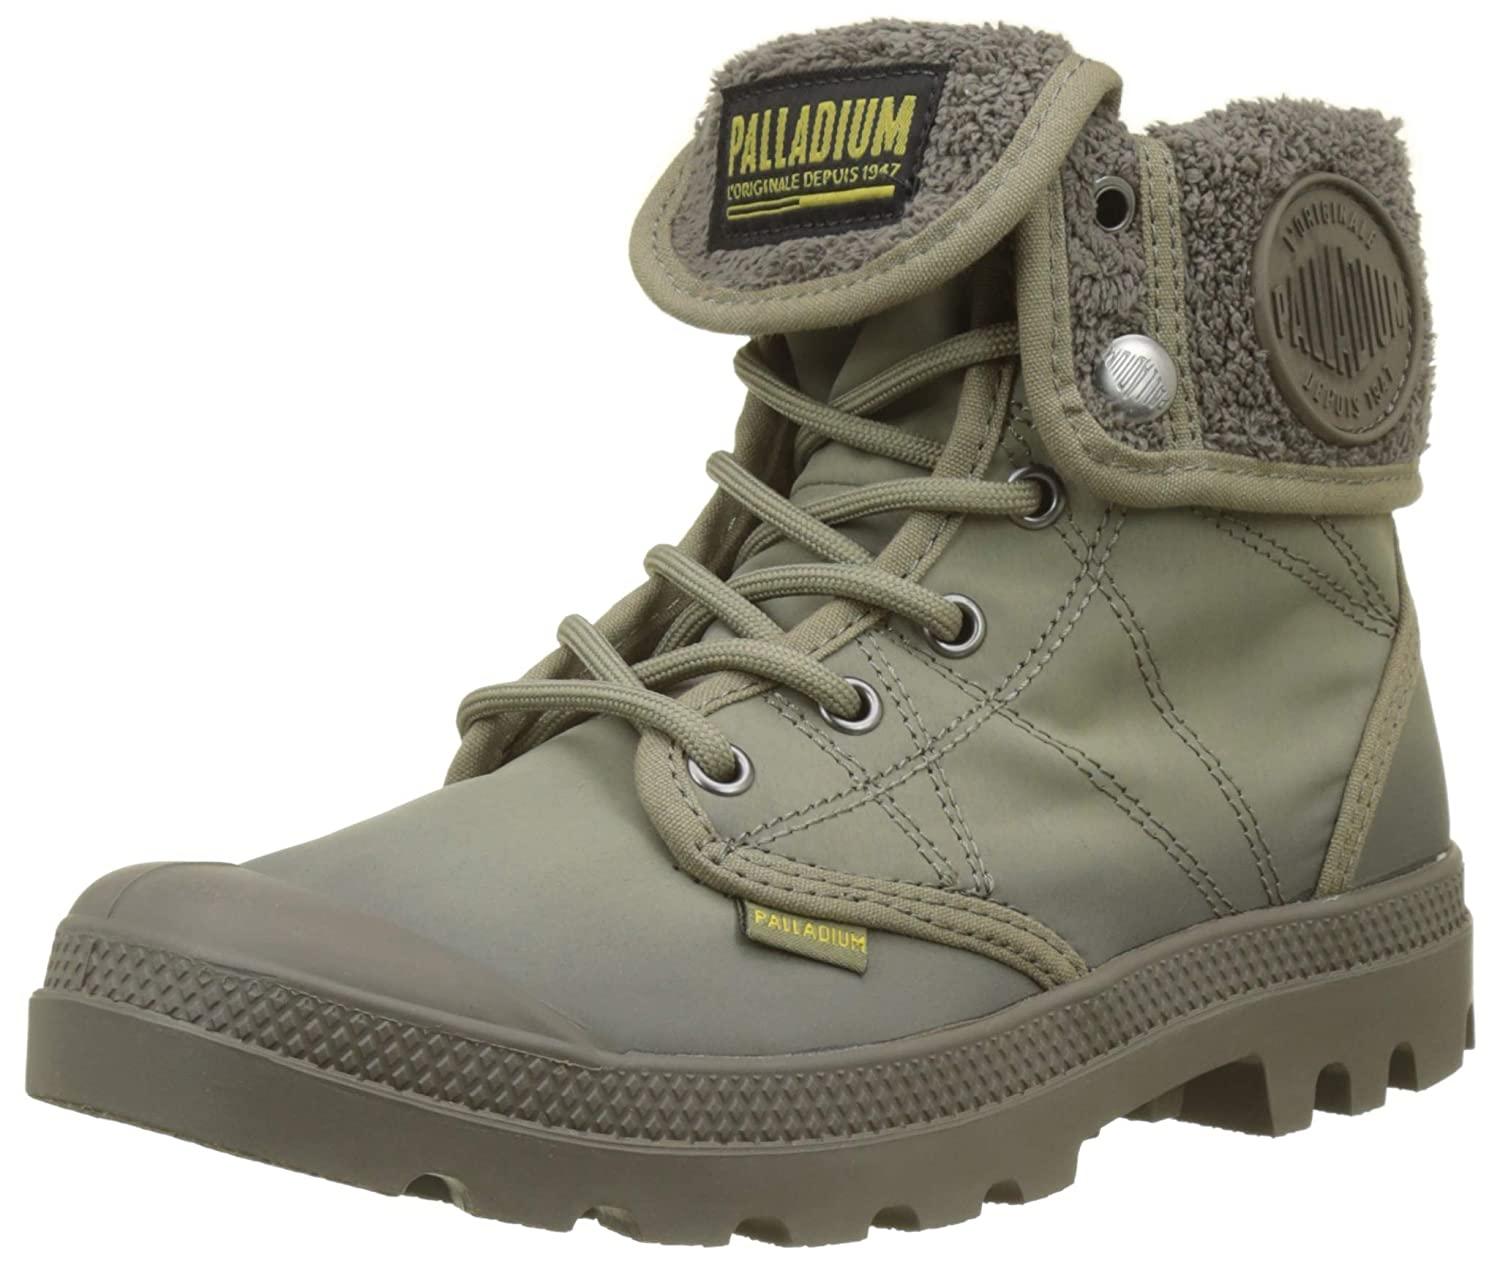 Palladium Pallabrousse Baggy B00ZP324CO TX, Baggy Bottes & Bottines Souples 19992 Mixte Adulte Vert (Dusky Green/Arnum Major Brown Rouge Q12) da512b7 - piero.space